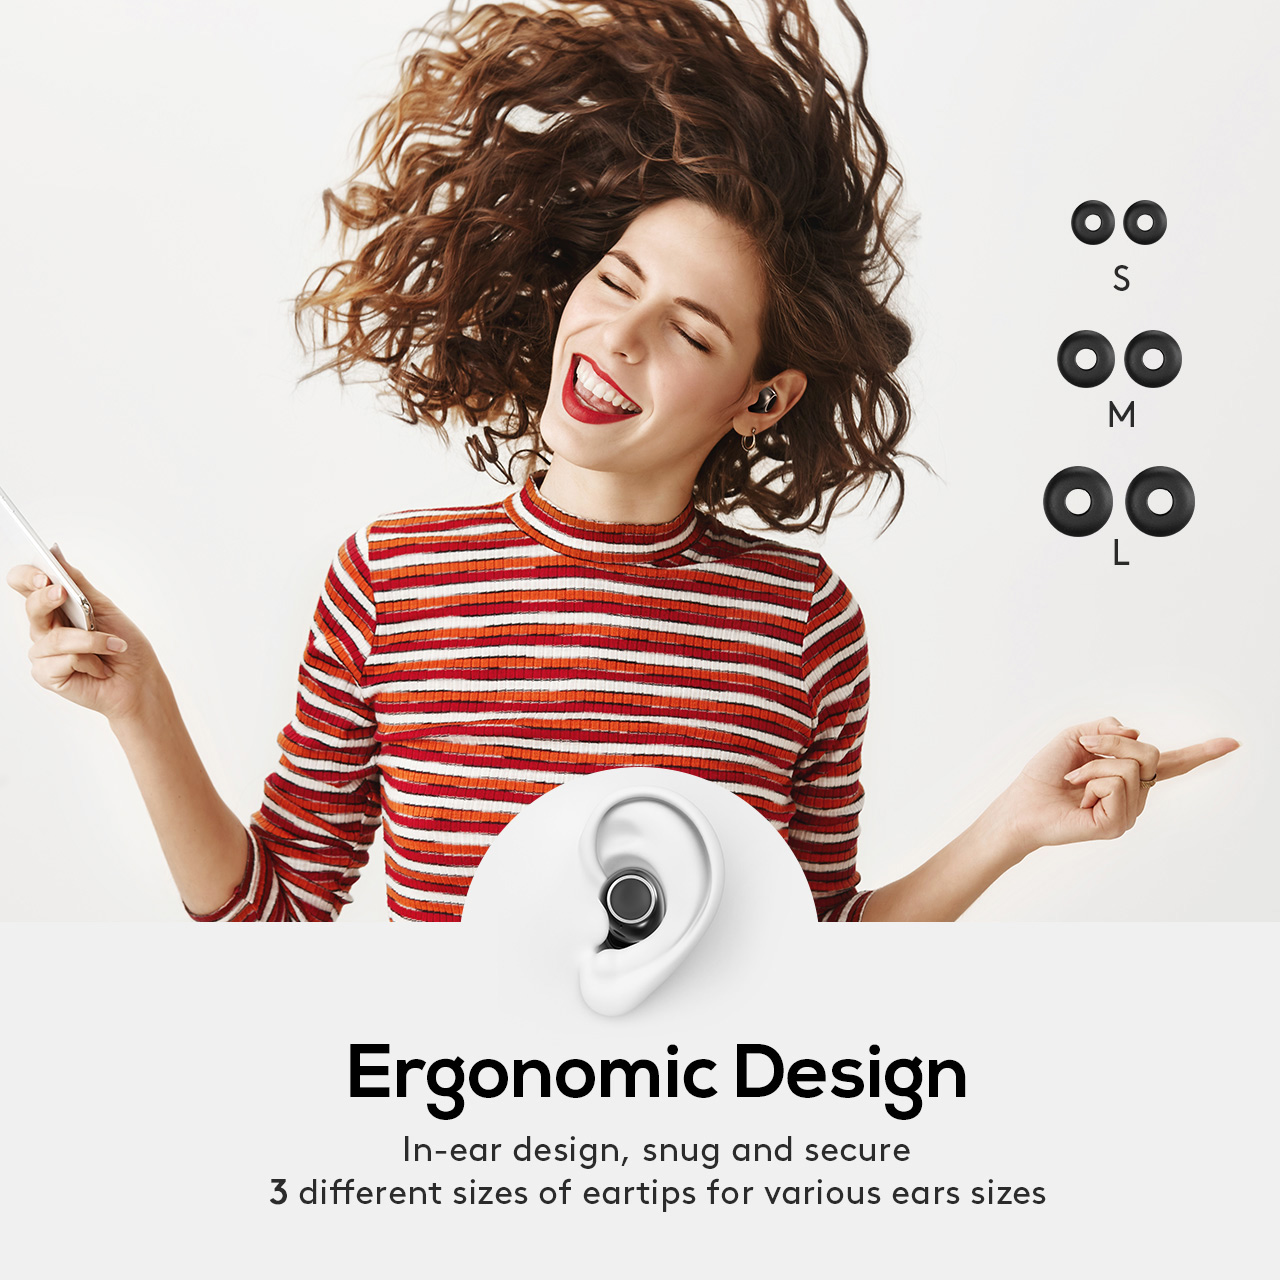 t6 true wireless earbuds ergonomic design